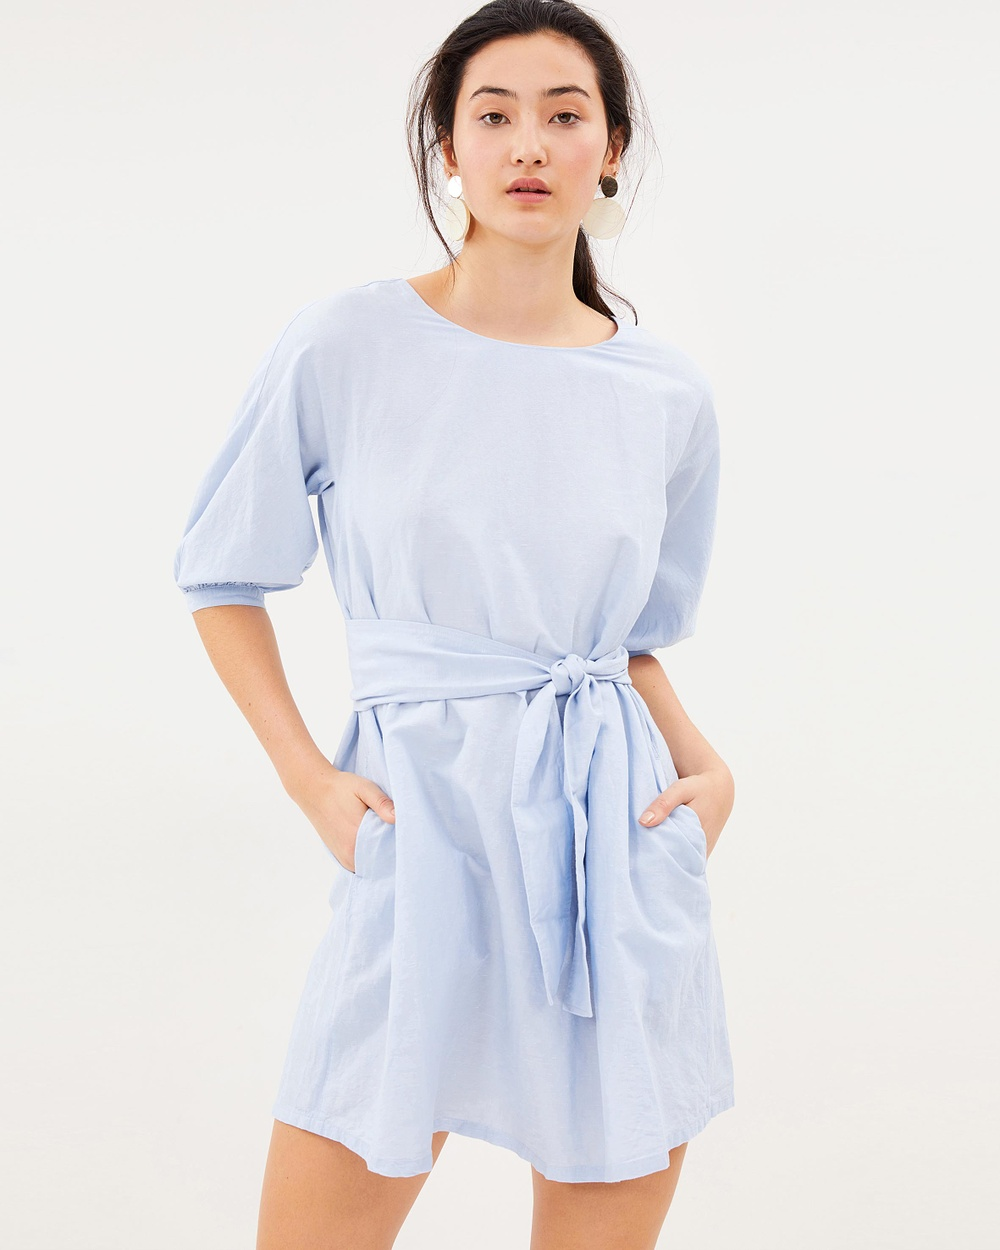 MAX & Co. Delfi Dress Dresses Light Blue Delfi Dress